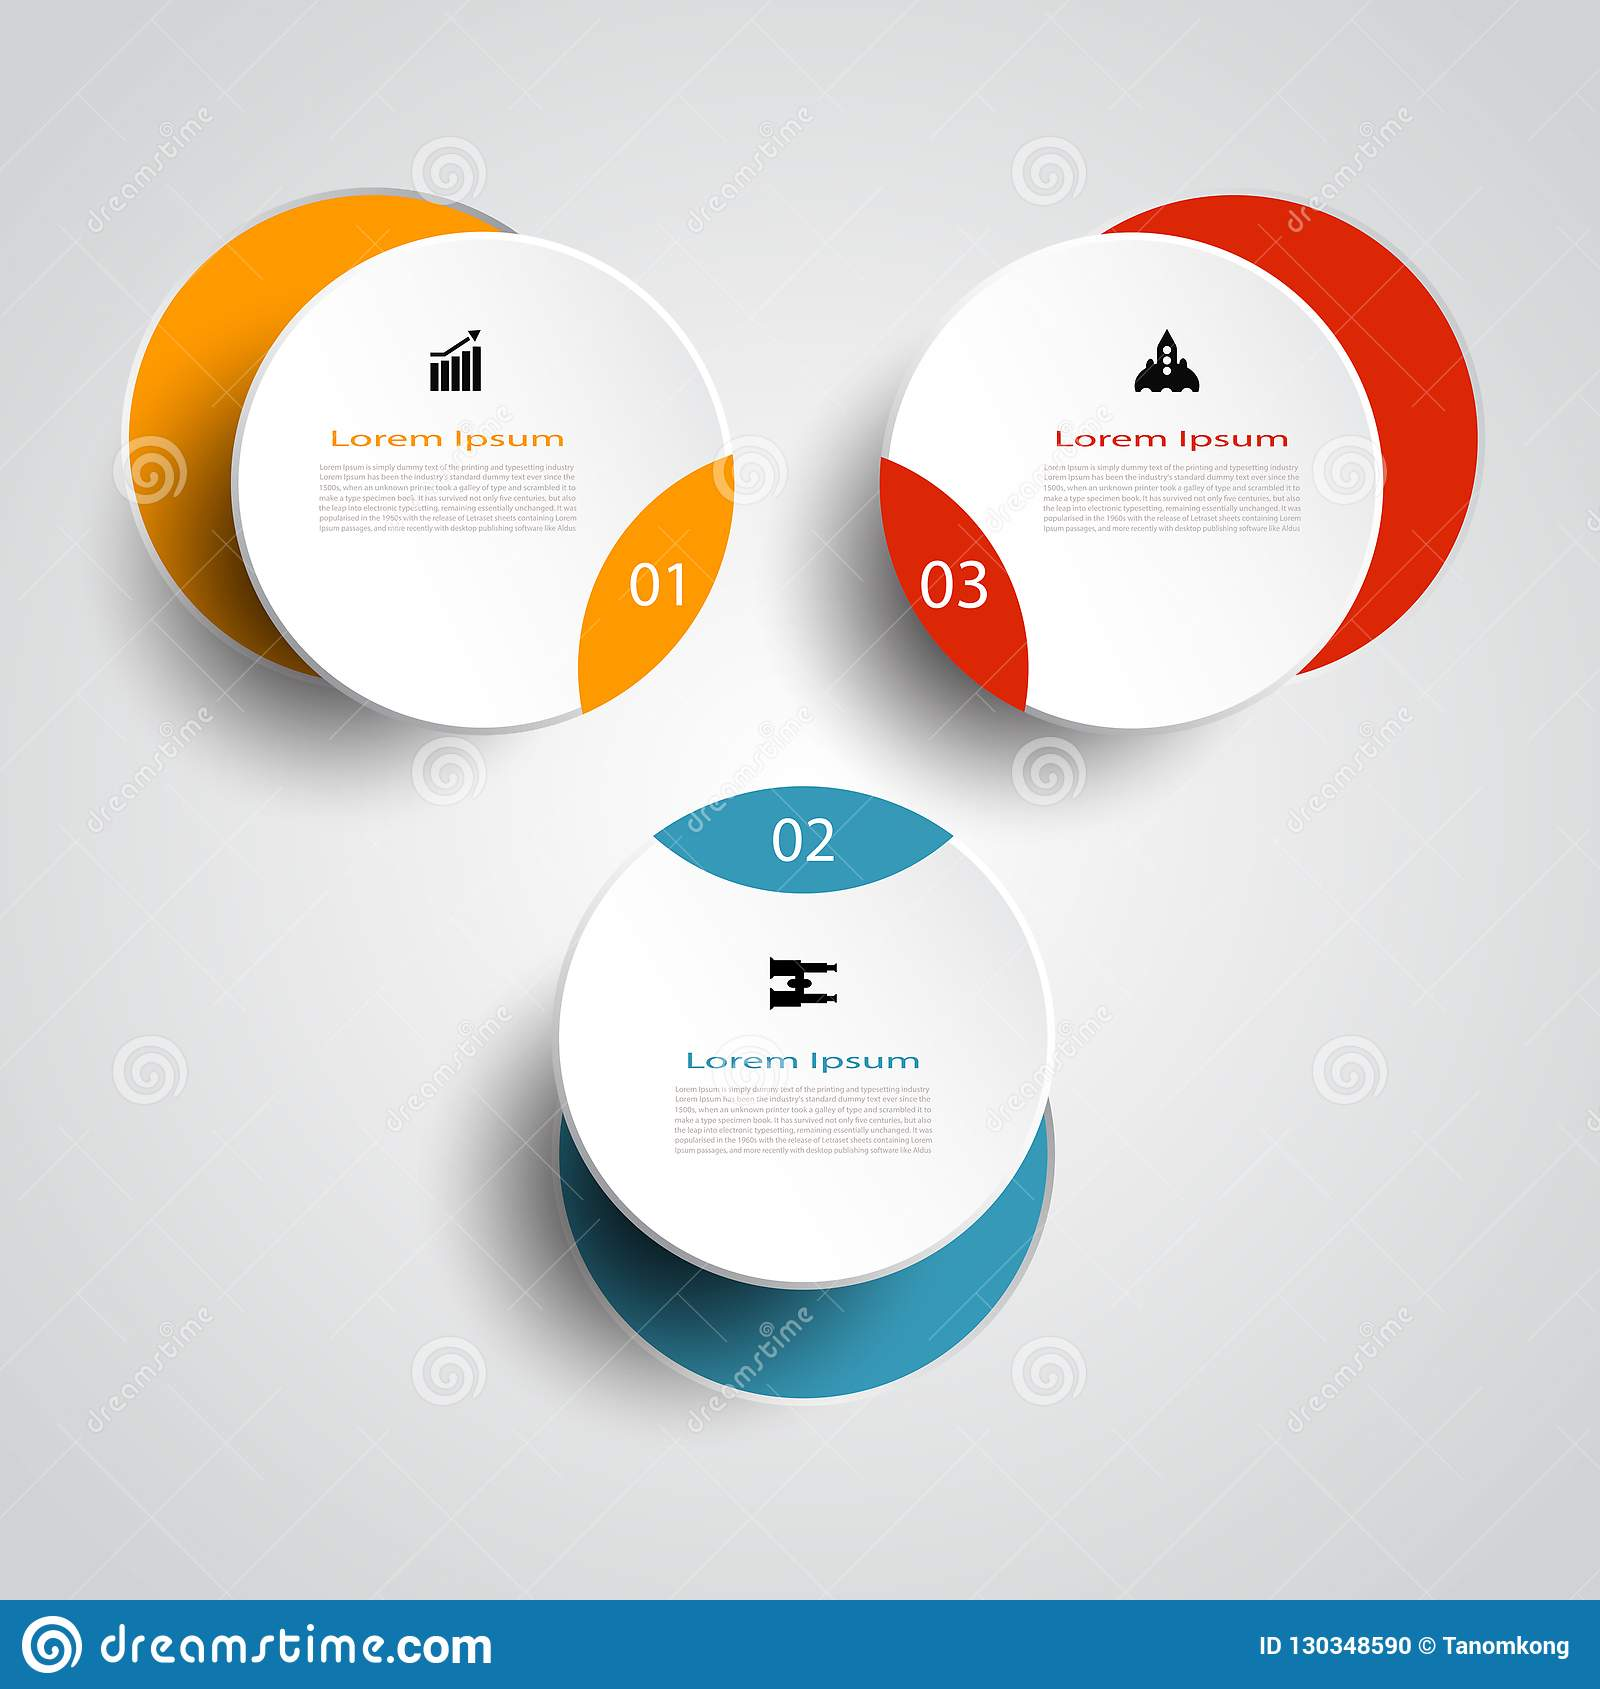 hight resolution of infographic technology template digital and engineering telecoms 3 step